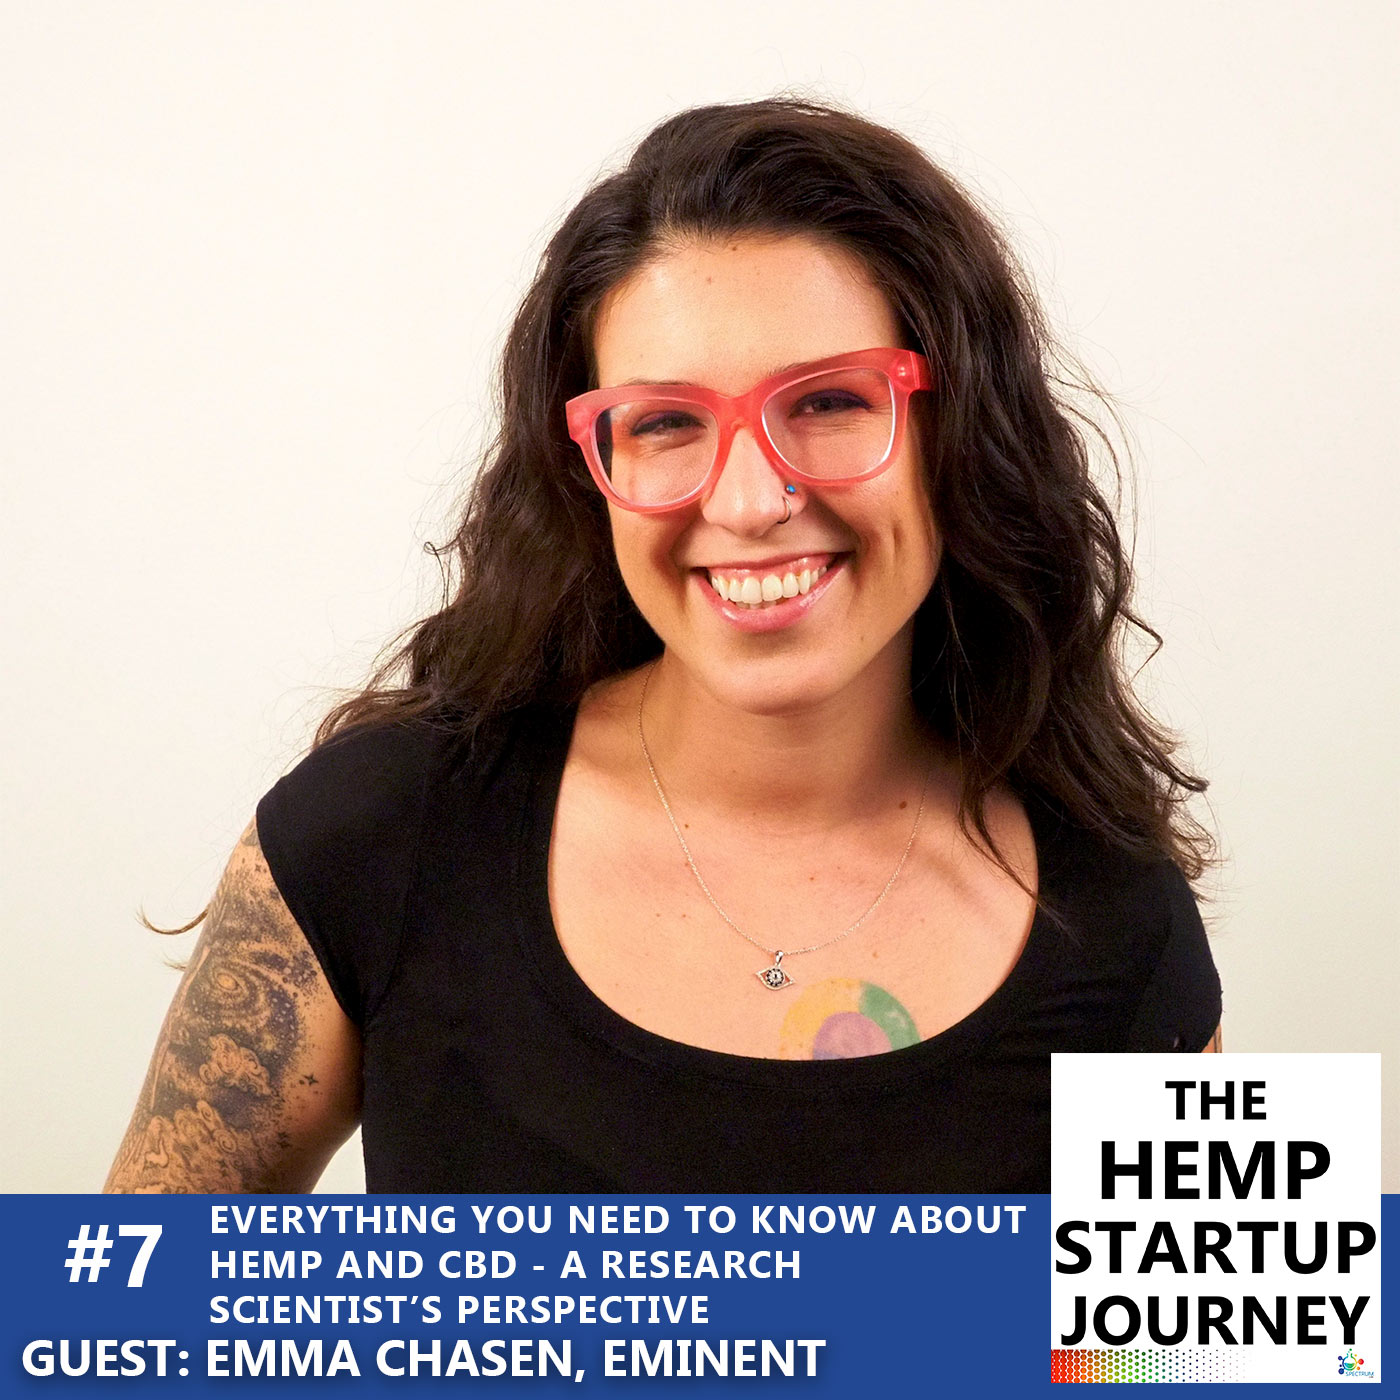 #7. Everything you need to know about hemp and CBD from a research scientist's perspective – with Emma Chasen (podcast)